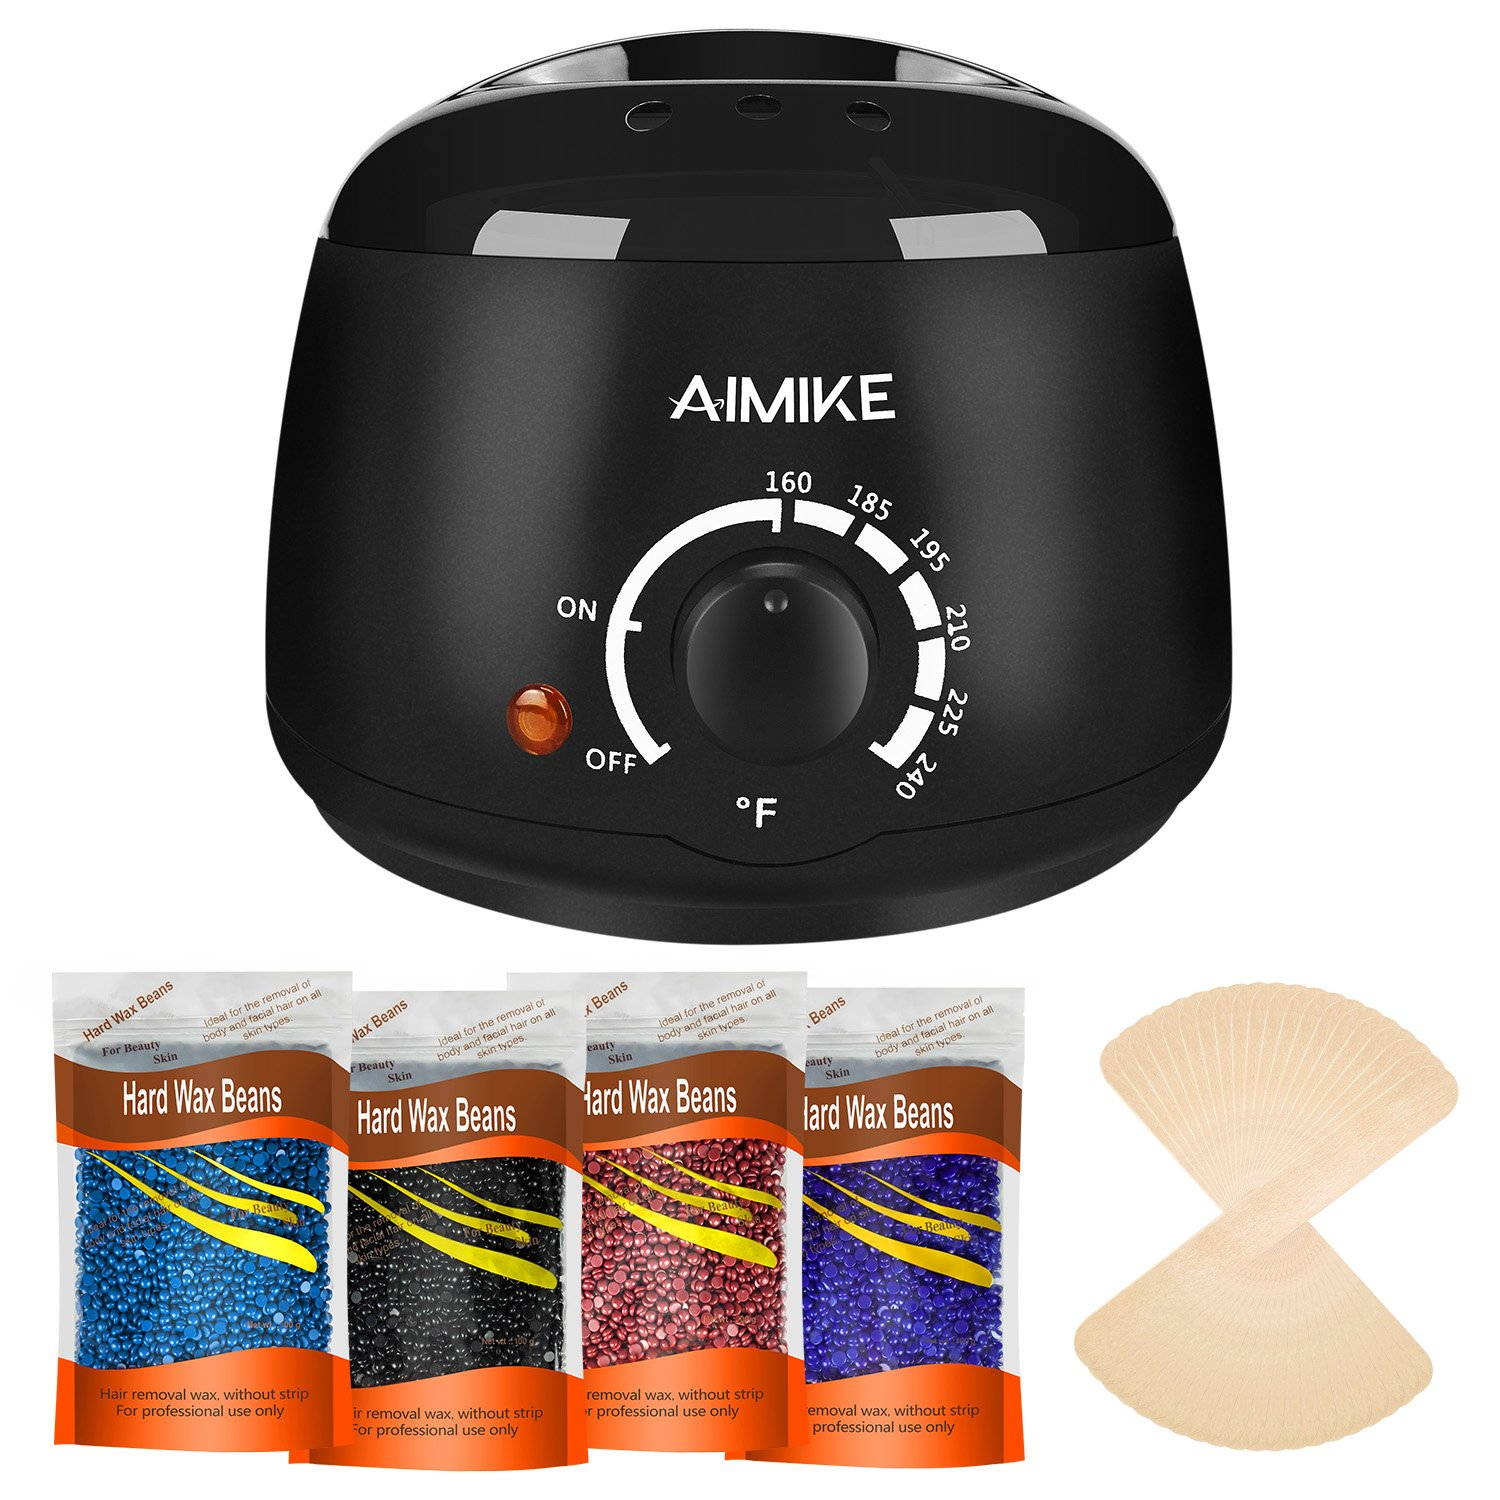 Wax Warmer, Hair Removal Waxing Kit, Upgraded Wax Heater with 4 Colors Hard Wax Beans + 20 Wax Applicator Sticks by Aimike